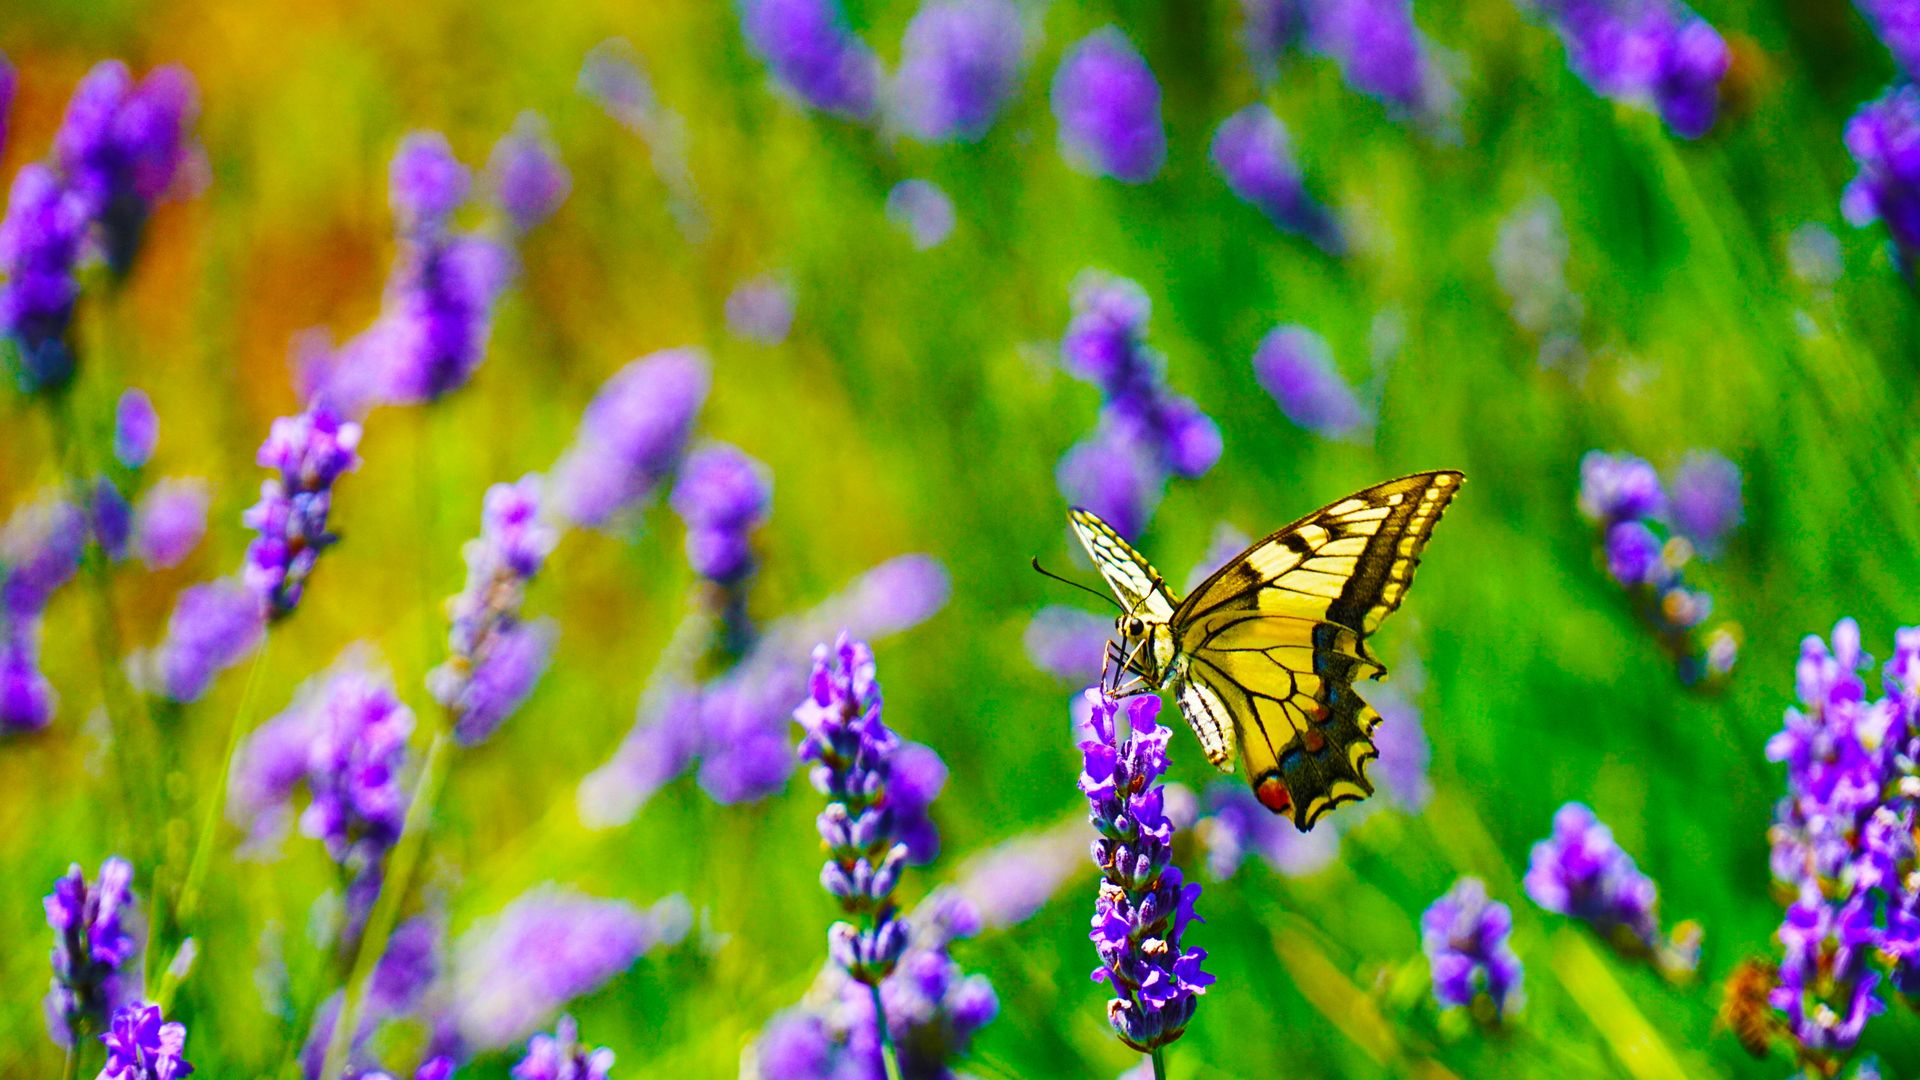 prime,butterfly,efflorescence,state of nature,lilac,on,purple,violet,lavender,panthera tigris,imperial,tiger,butterfly stroke,swallowtail,flower,flush,cosmos,nature